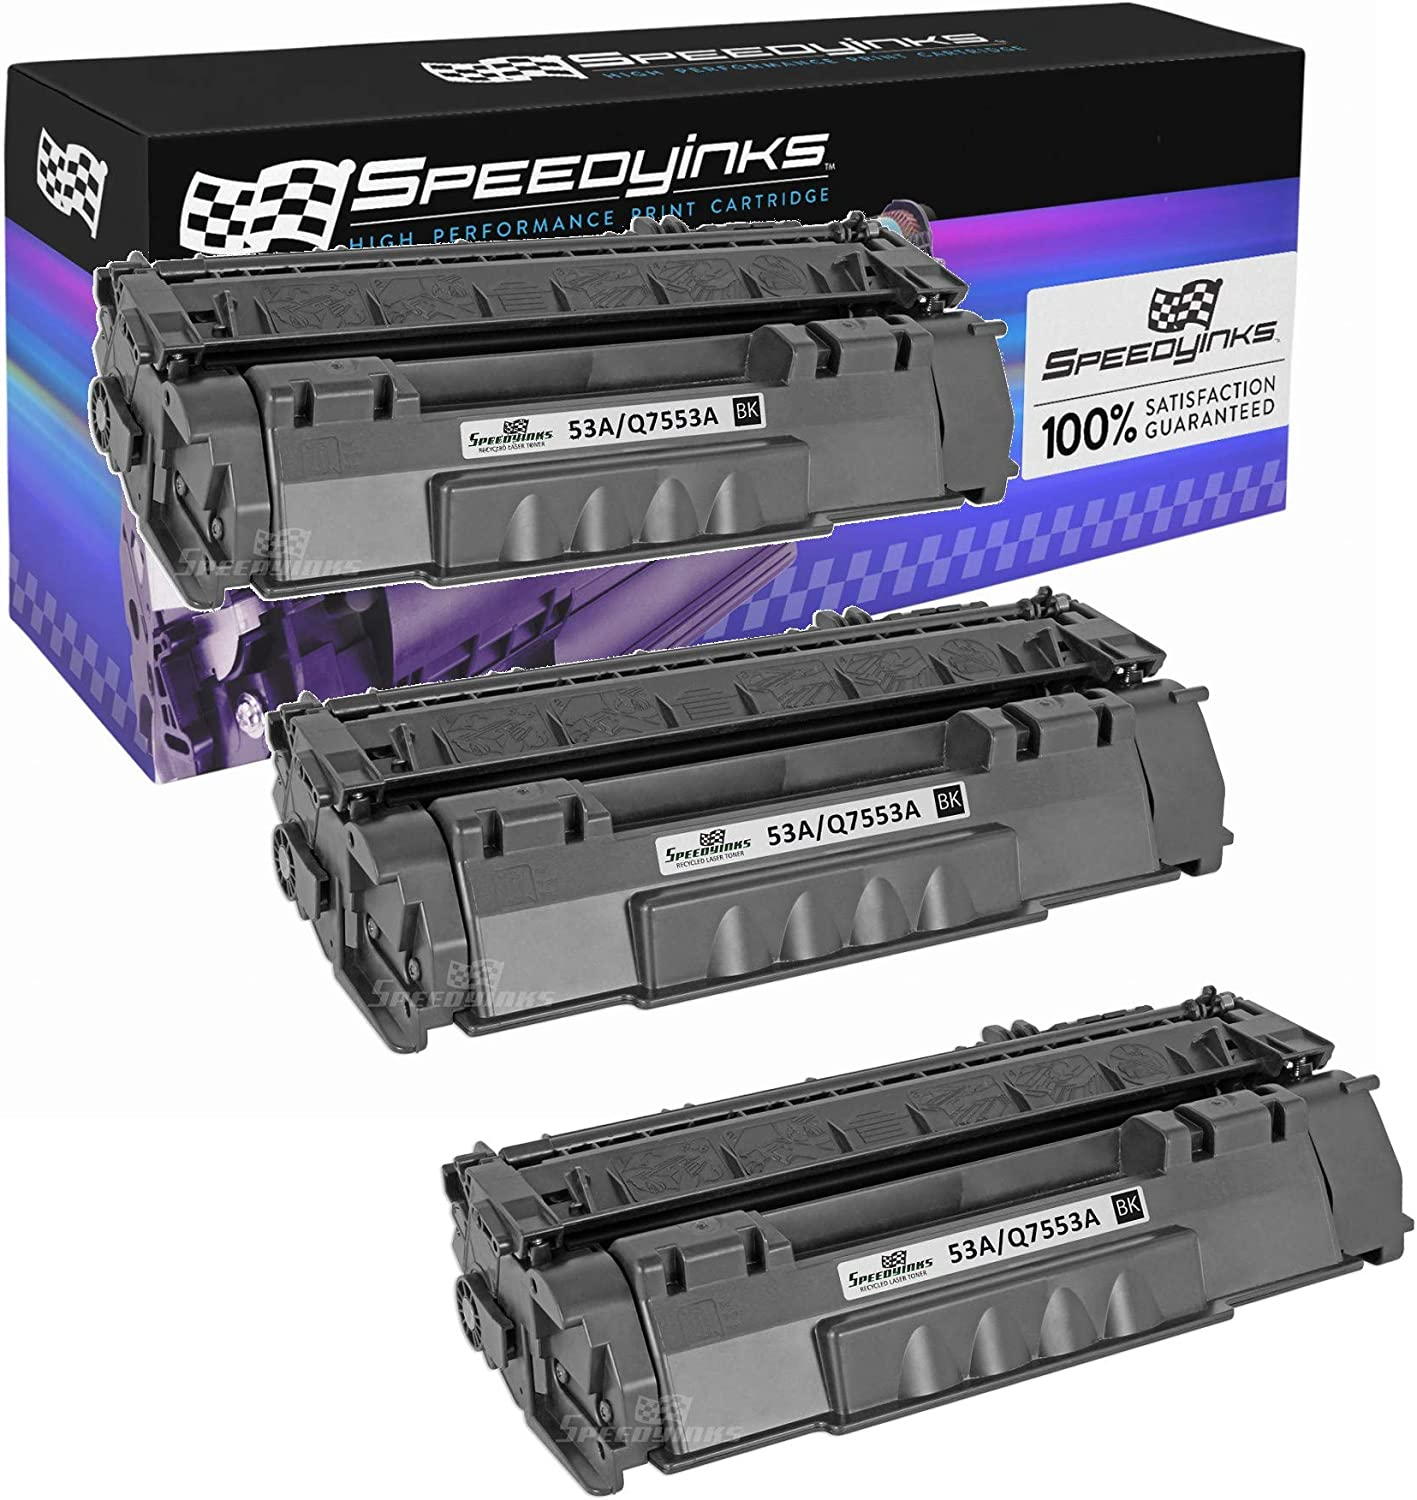 Speedy Inks Compatible Toner Cartridge Replacement for HP 53A (Black, 3-Pack)